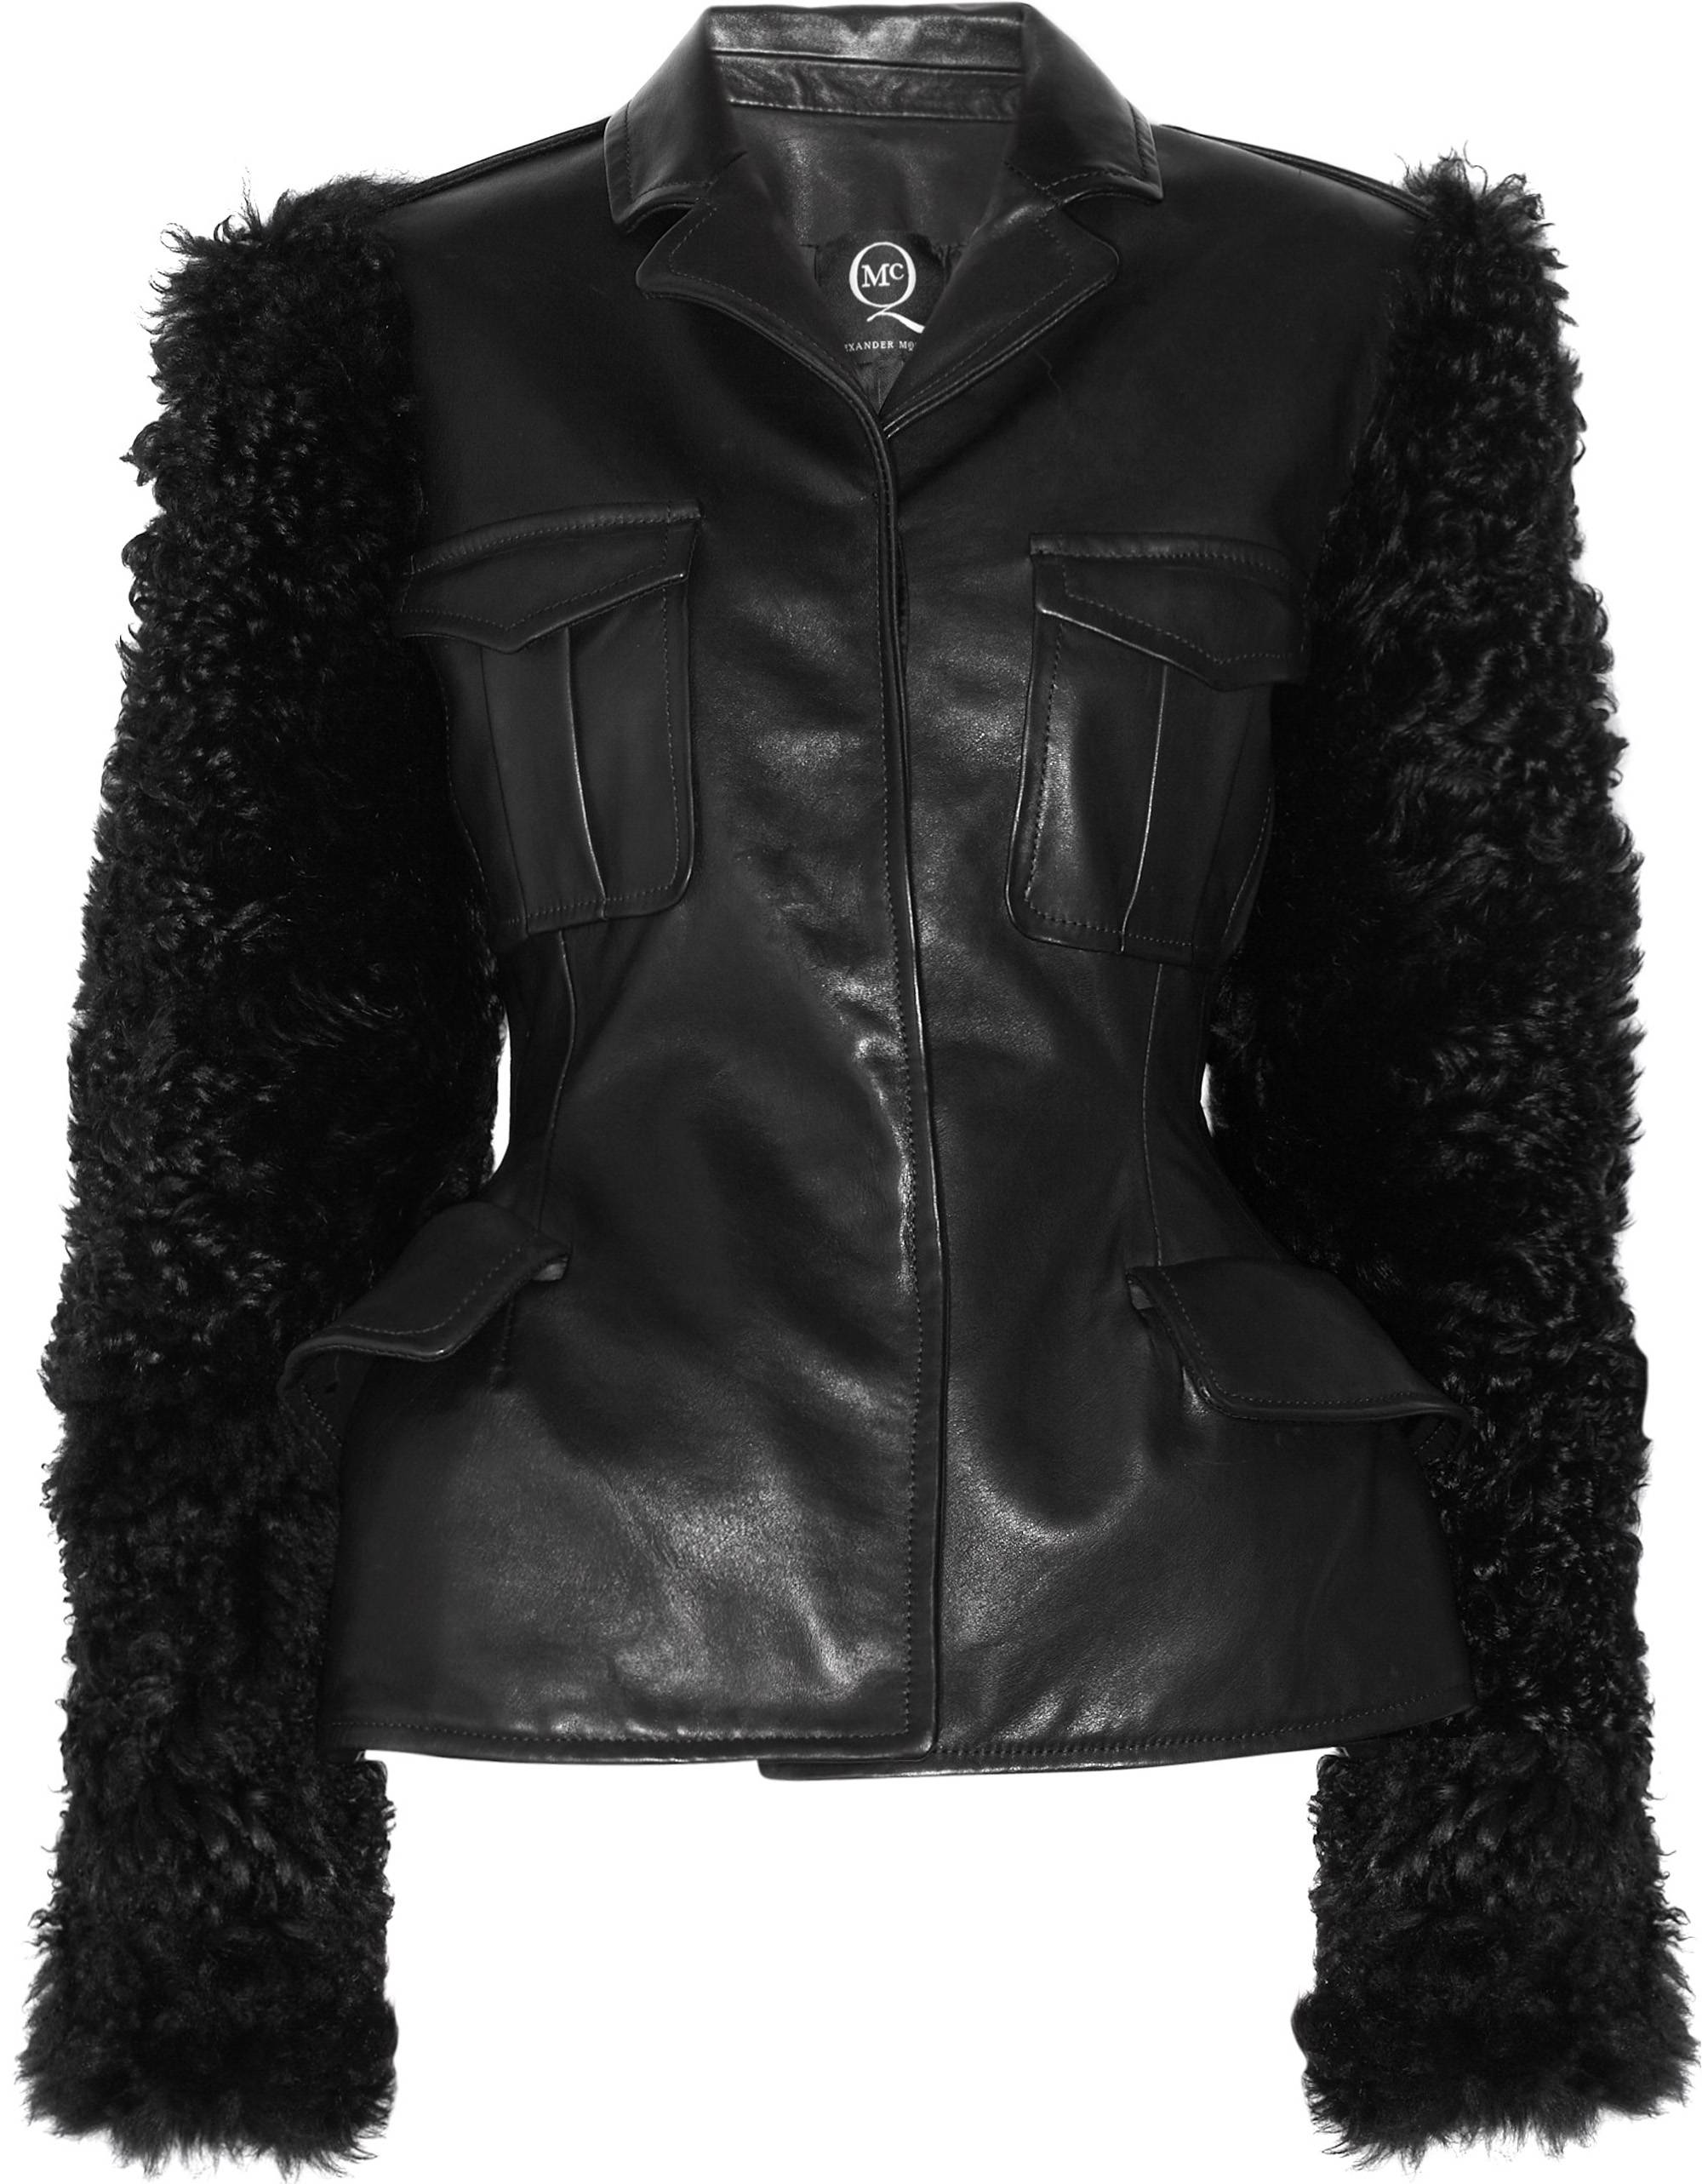 322568_McQ Alexander McQueen - Military Leather and Shearling Jacket NET-A-PORTER